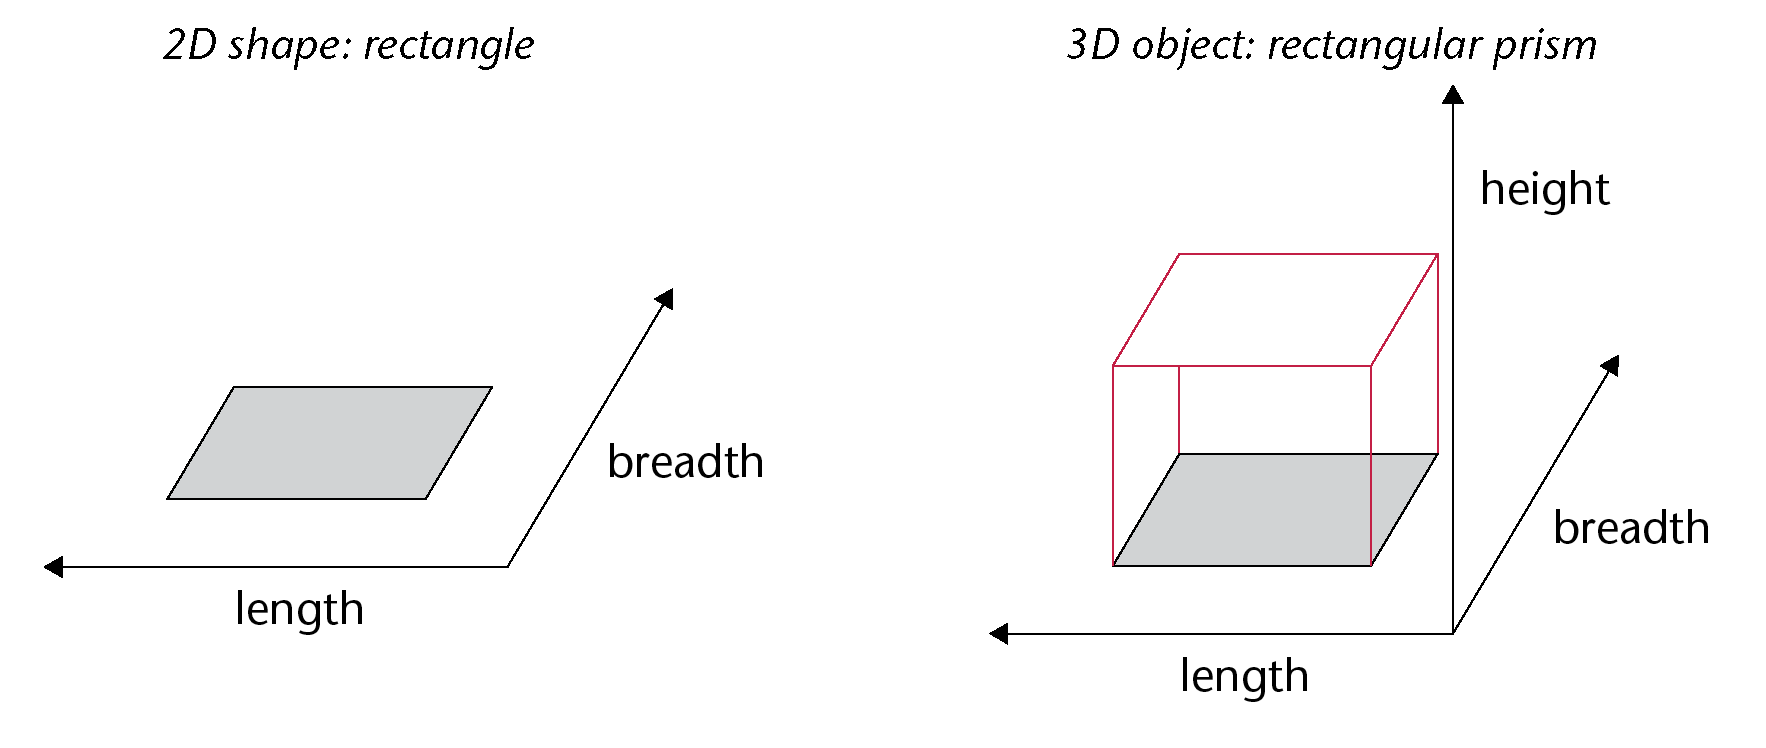 Dimensions are responsible in defining shape of an object